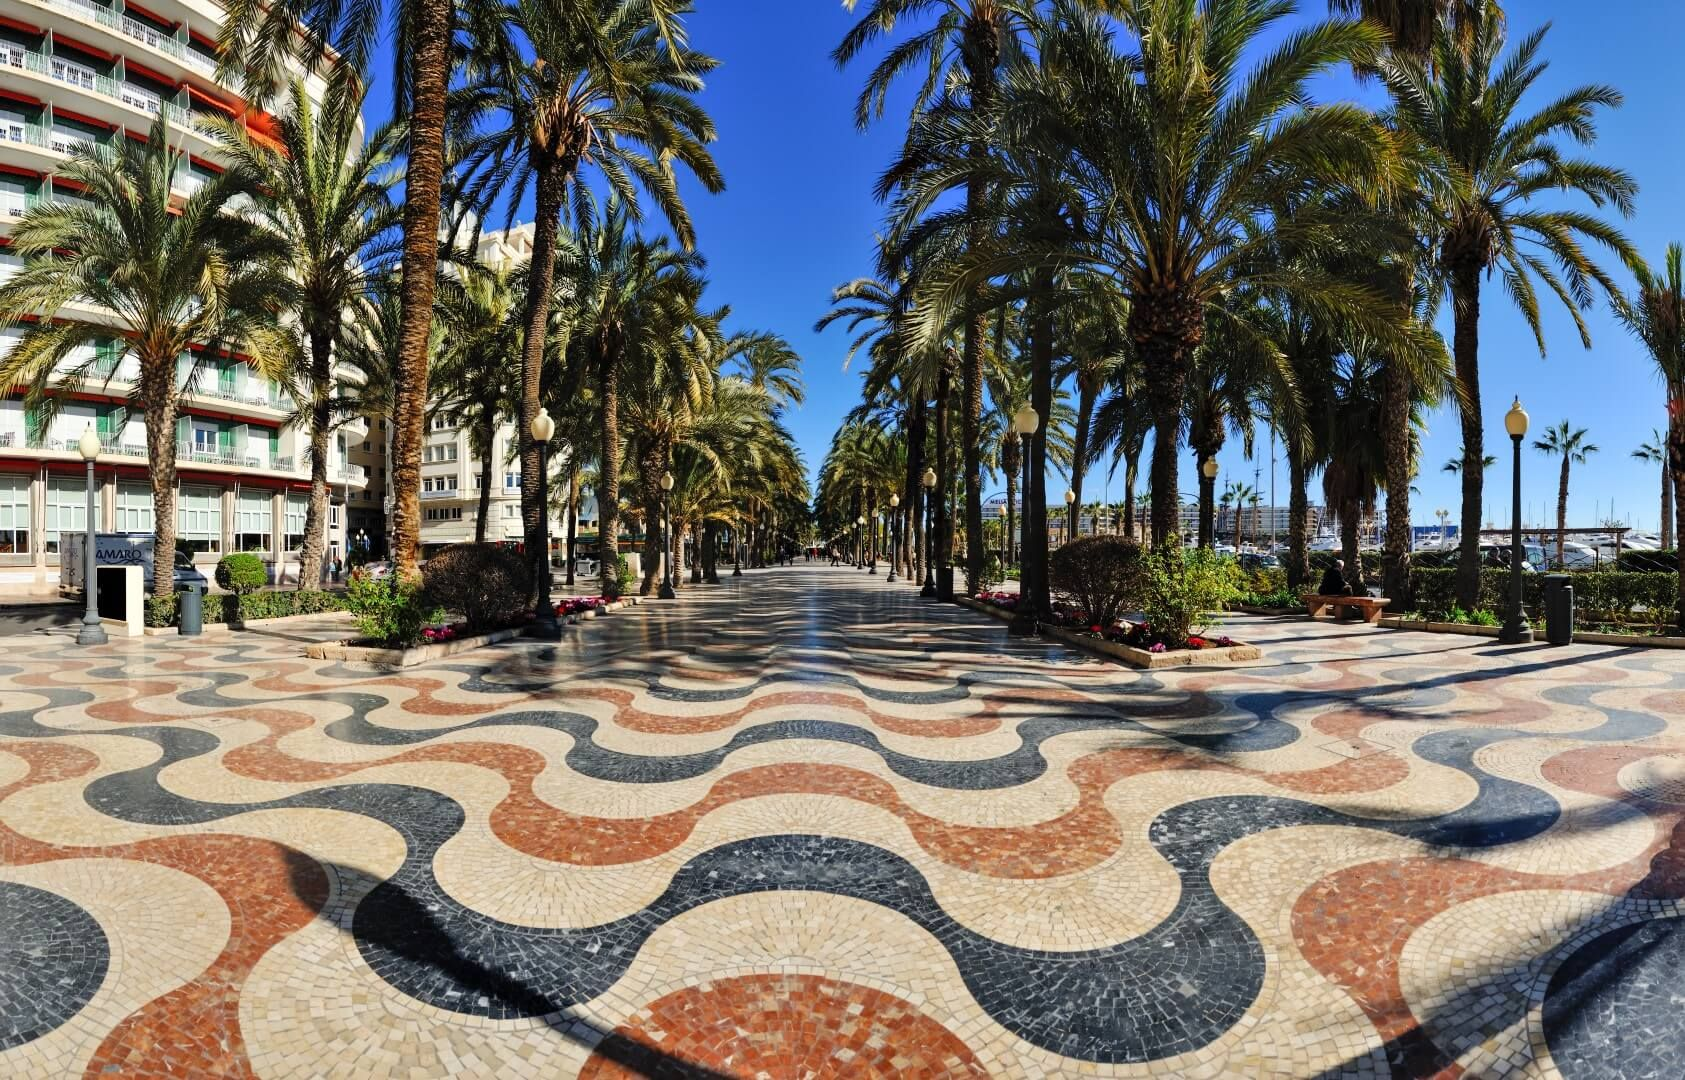 4 Best Places to Explore in Alicante, Spain